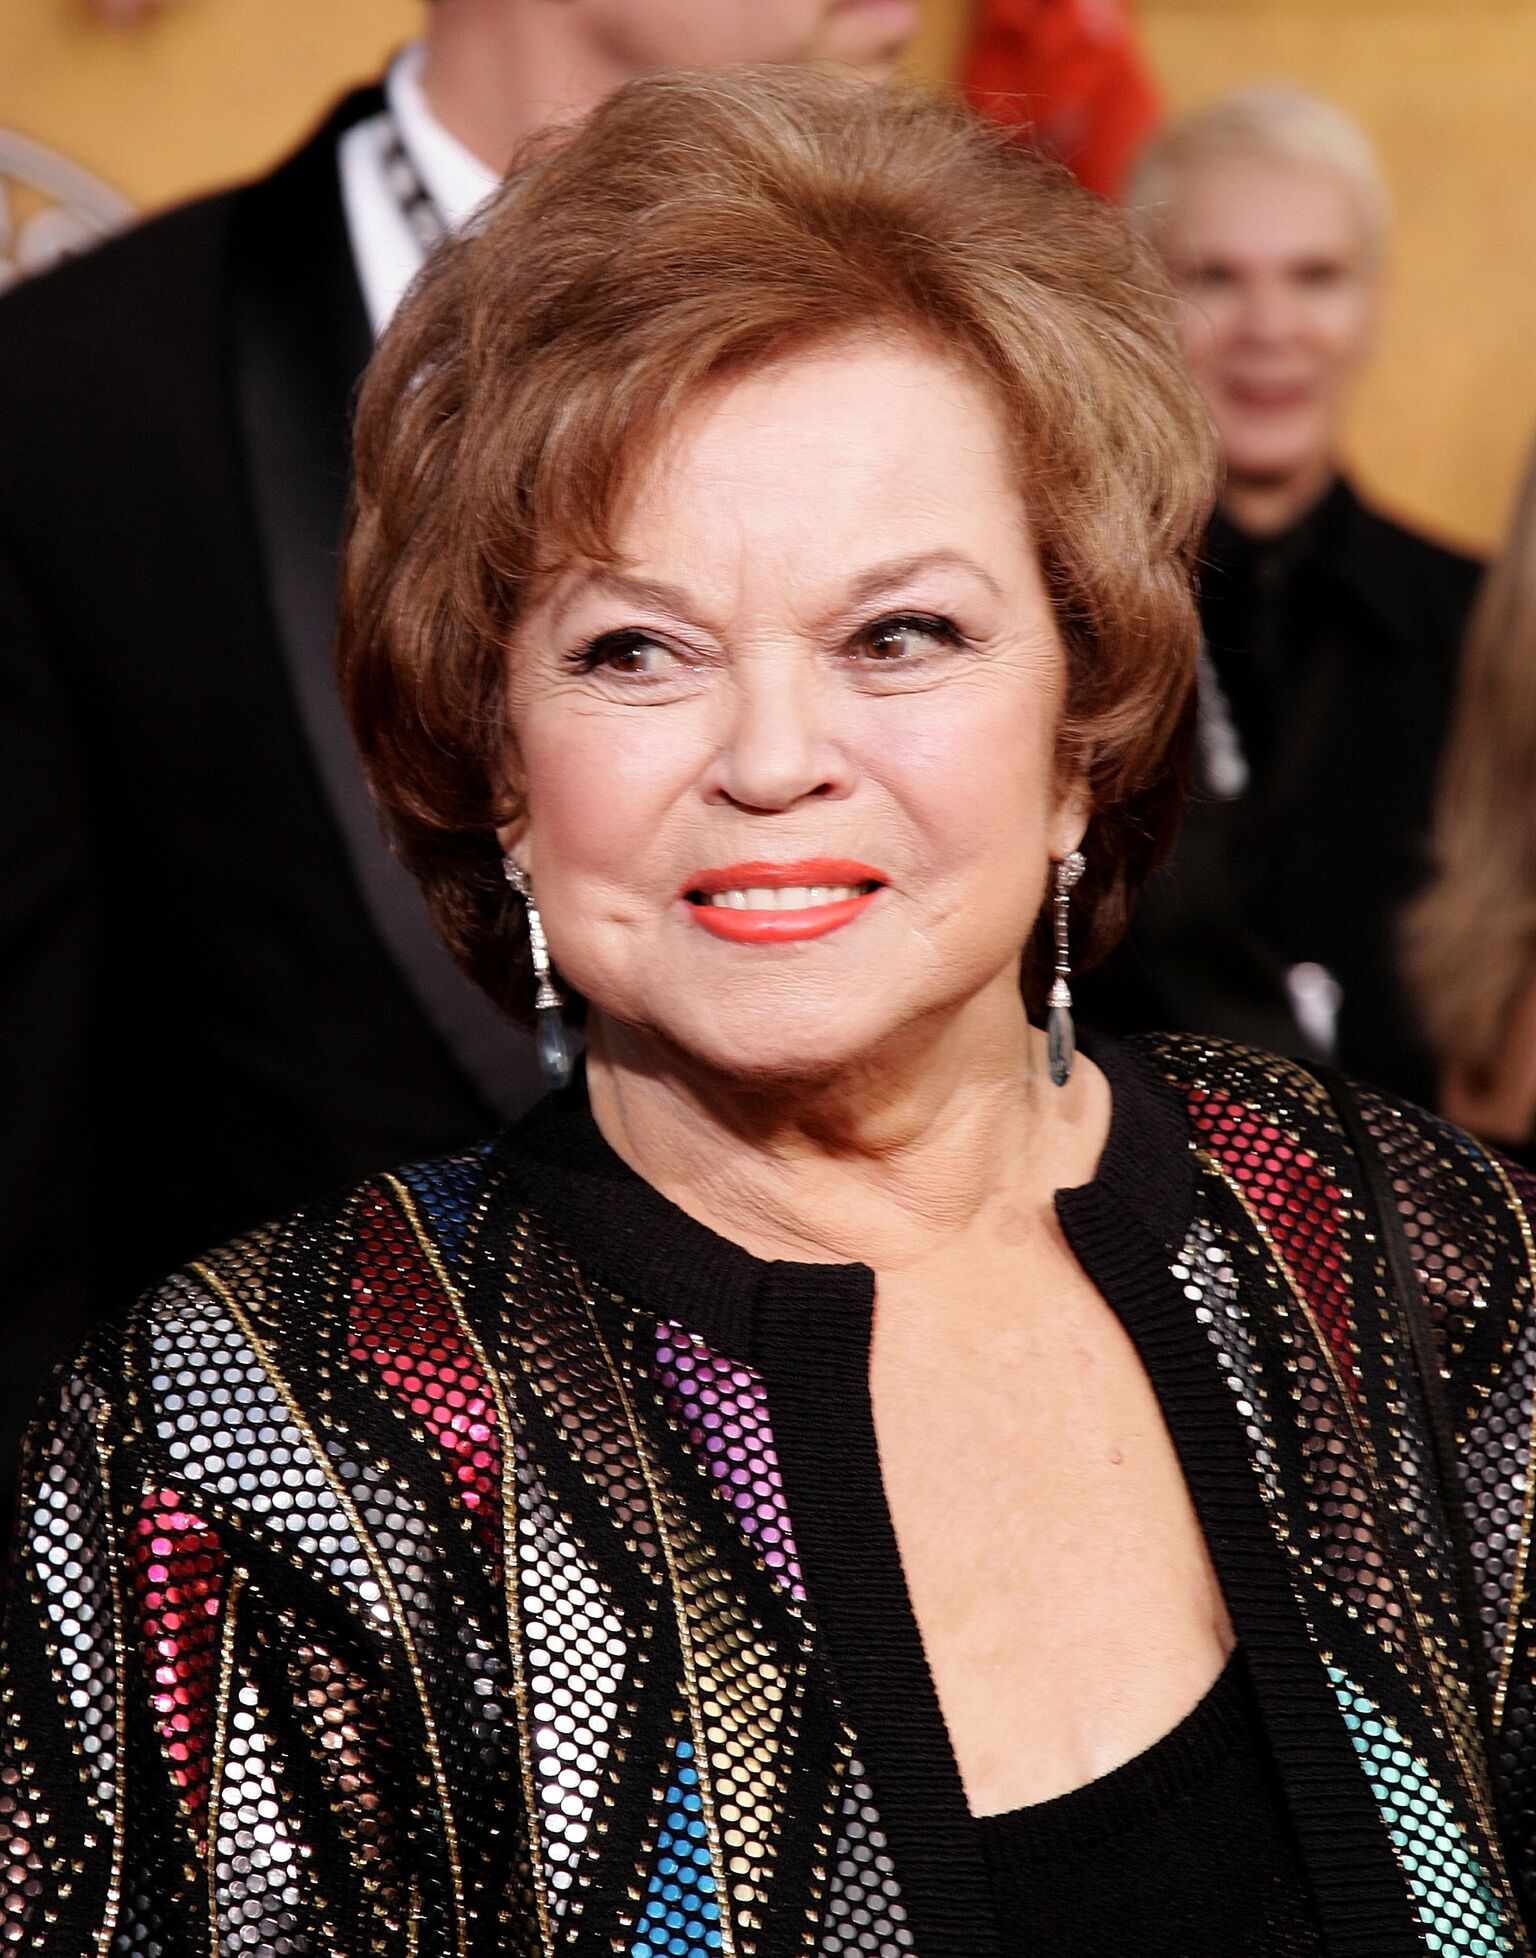 Shirley Temple Black arrives at the 12th Annual Screen Actors Guild Awards | Getty Images / Global Images Ukraine